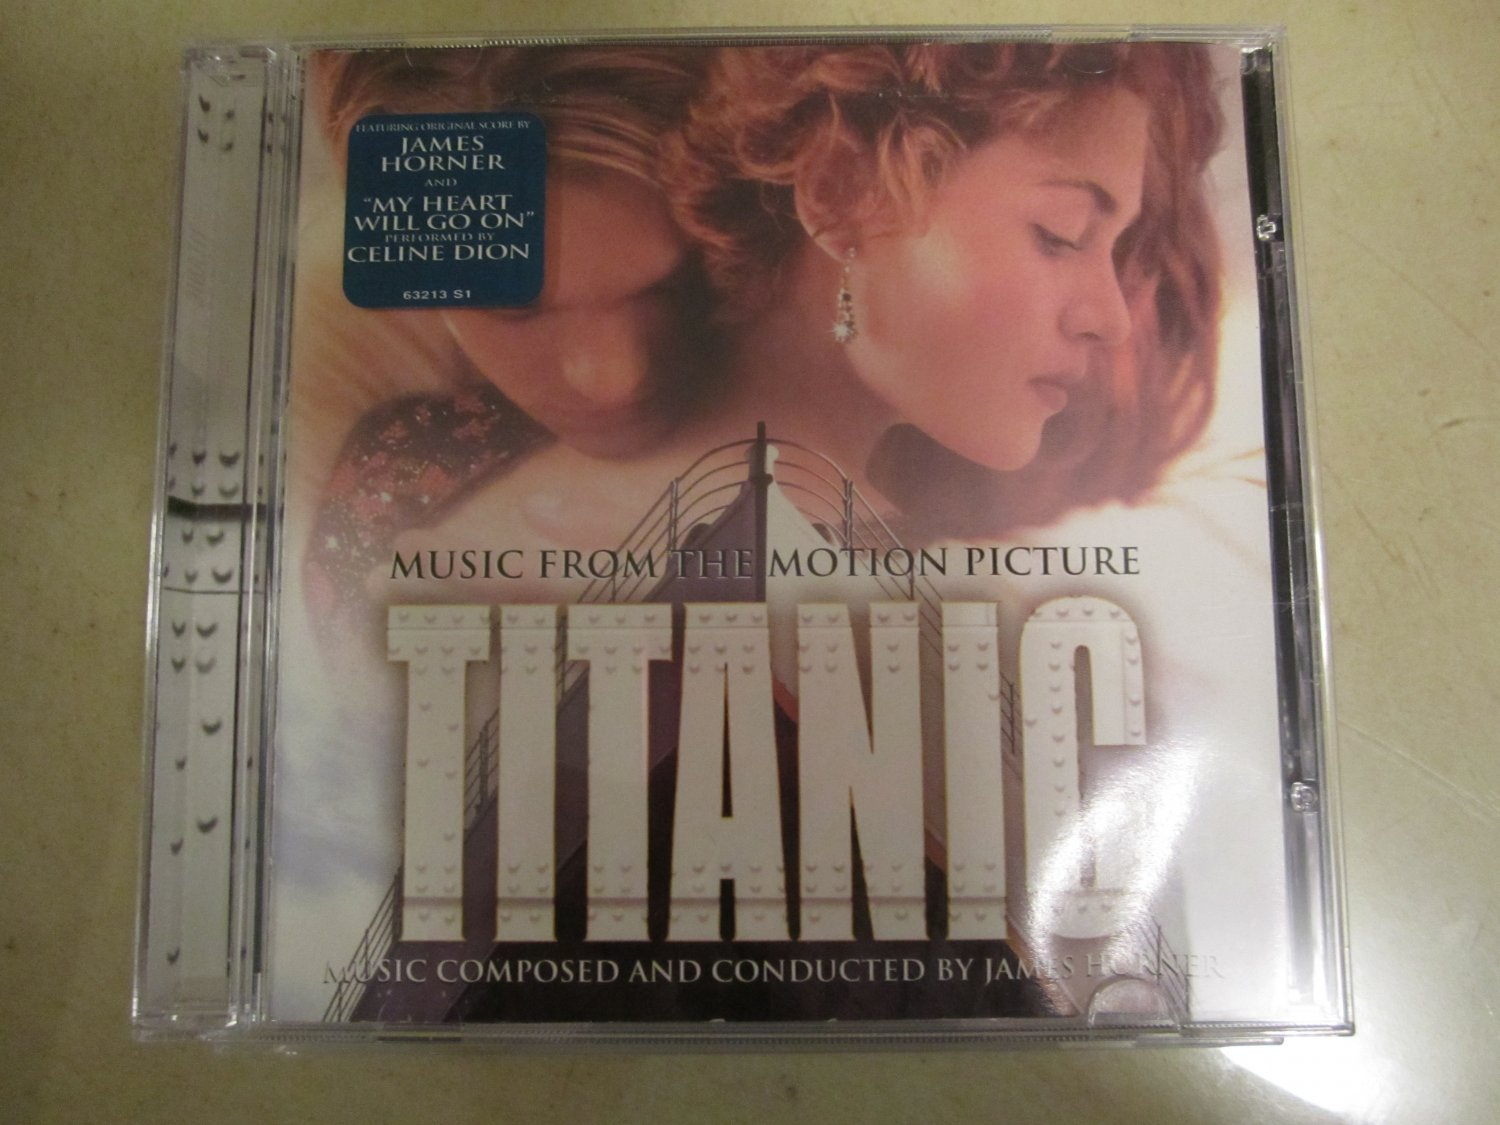 Titanic CD~Music from the Motion Picture